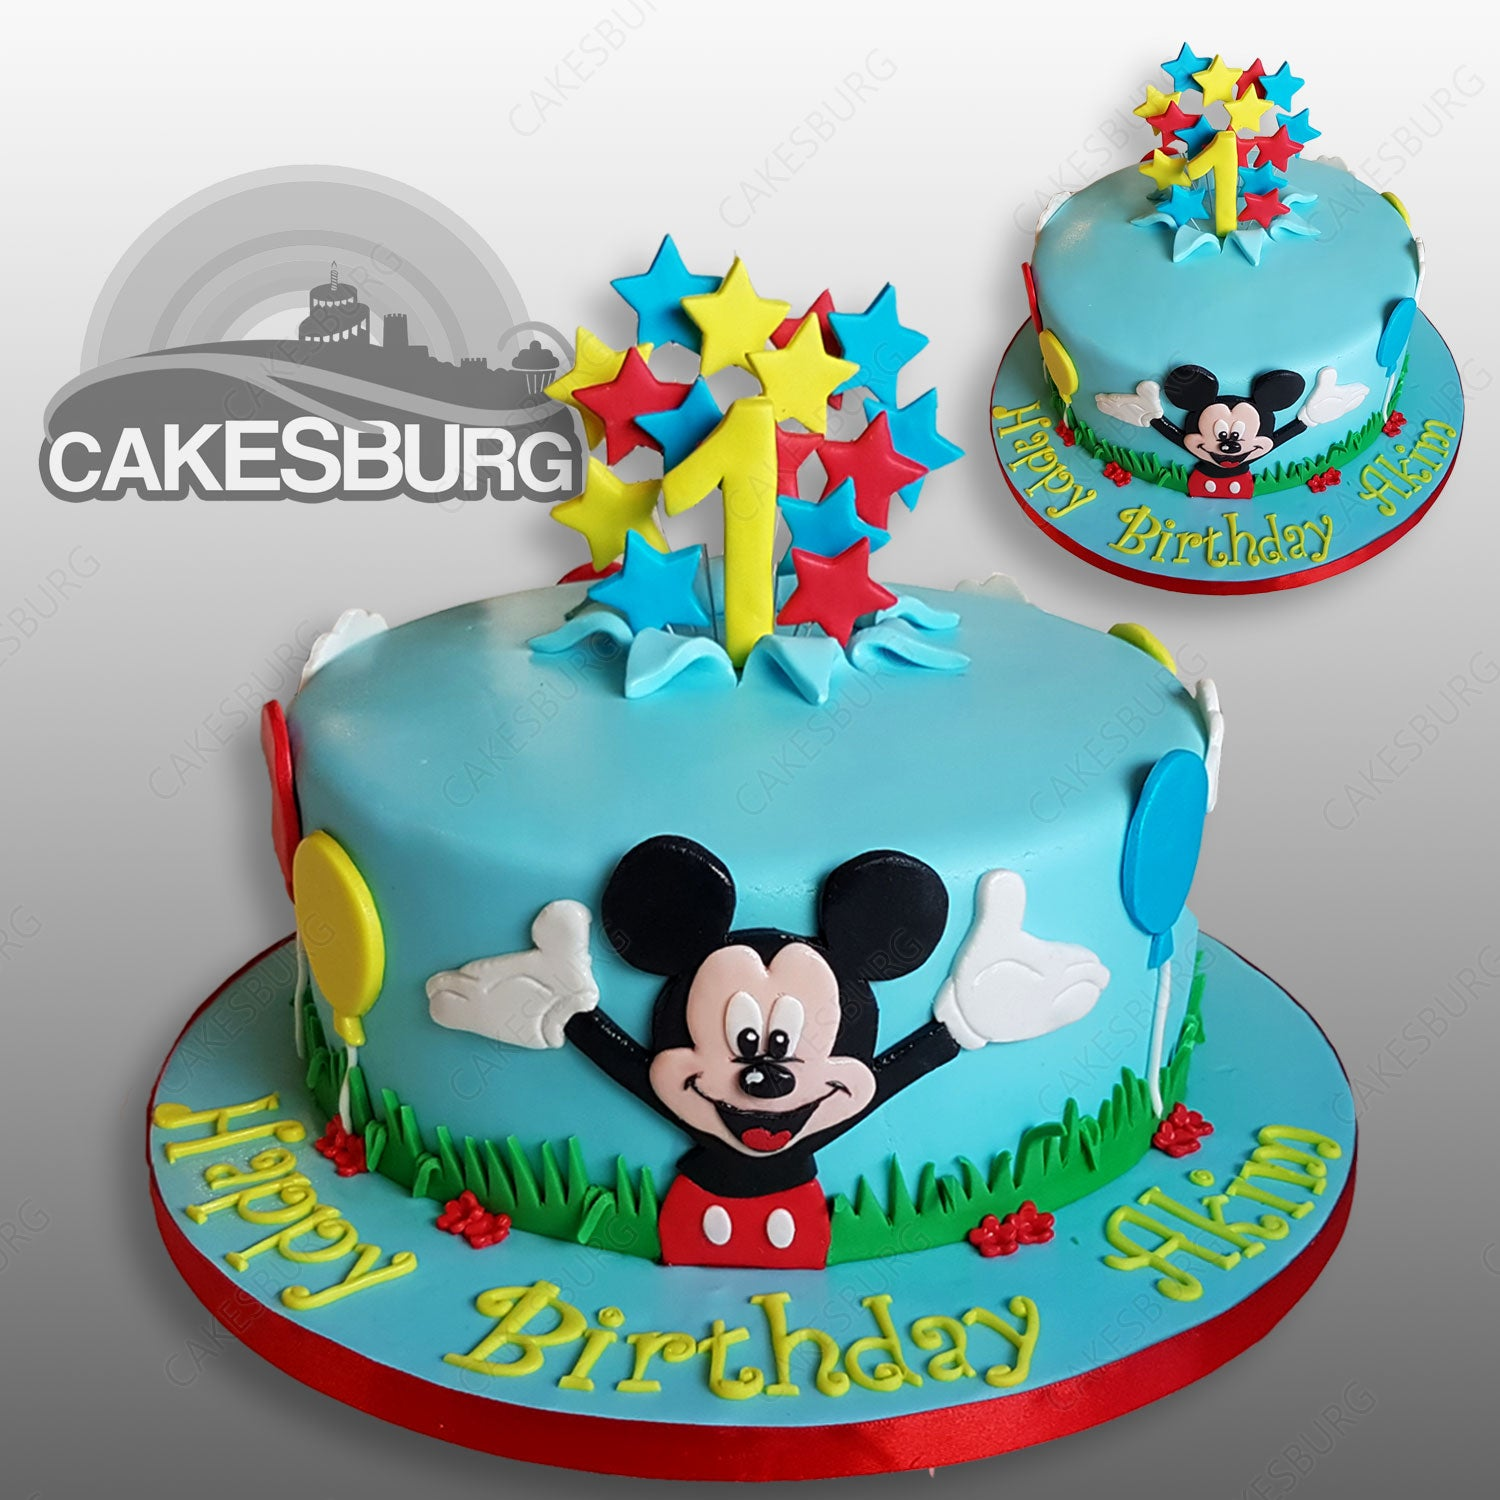 Astounding Mickey Mouse Cake 1 Cakesburg Online Premium Cake Shop Personalised Birthday Cards Bromeletsinfo